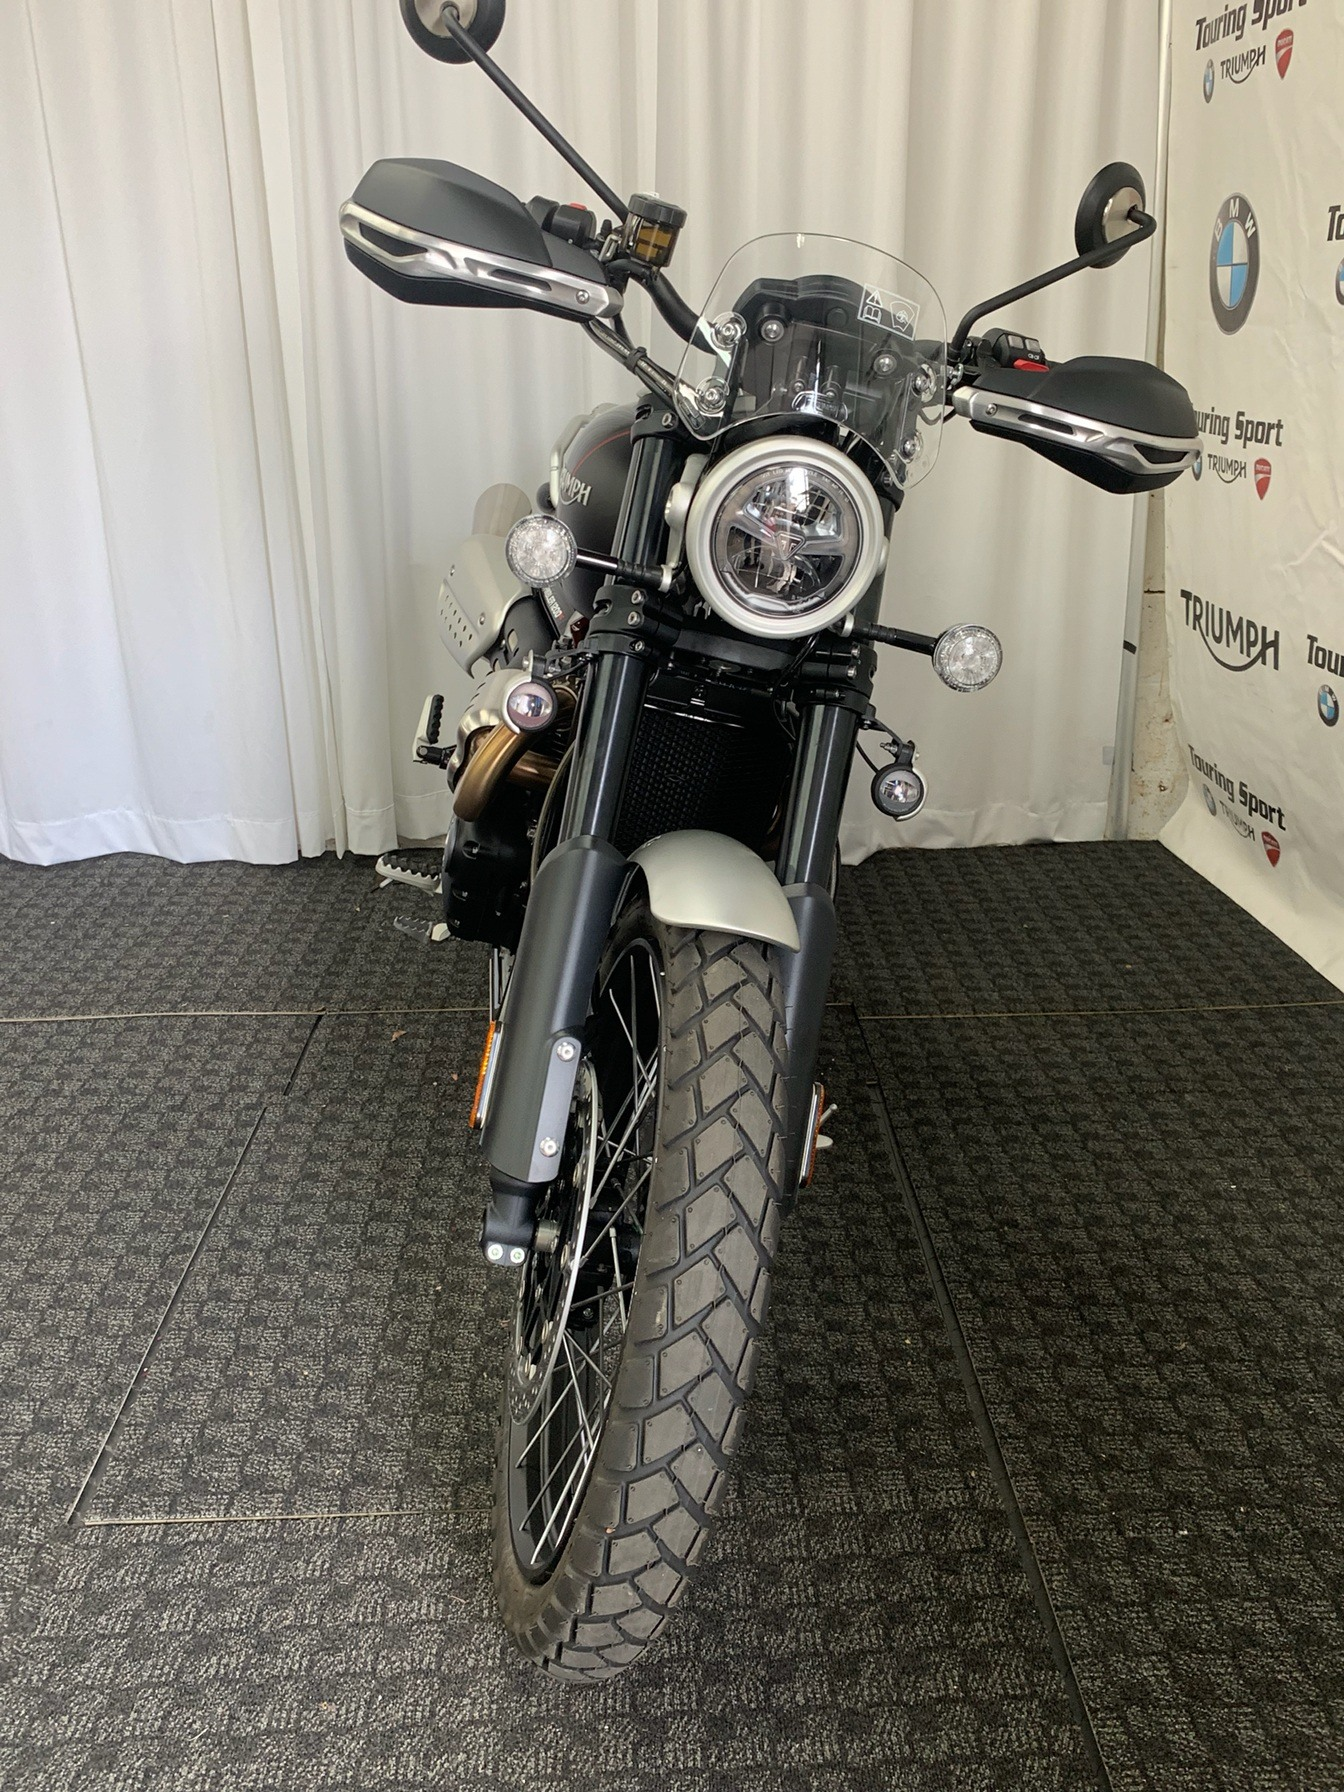 2019 Triumph Scrambler 1200 XC in Greenville, South Carolina - Photo 3